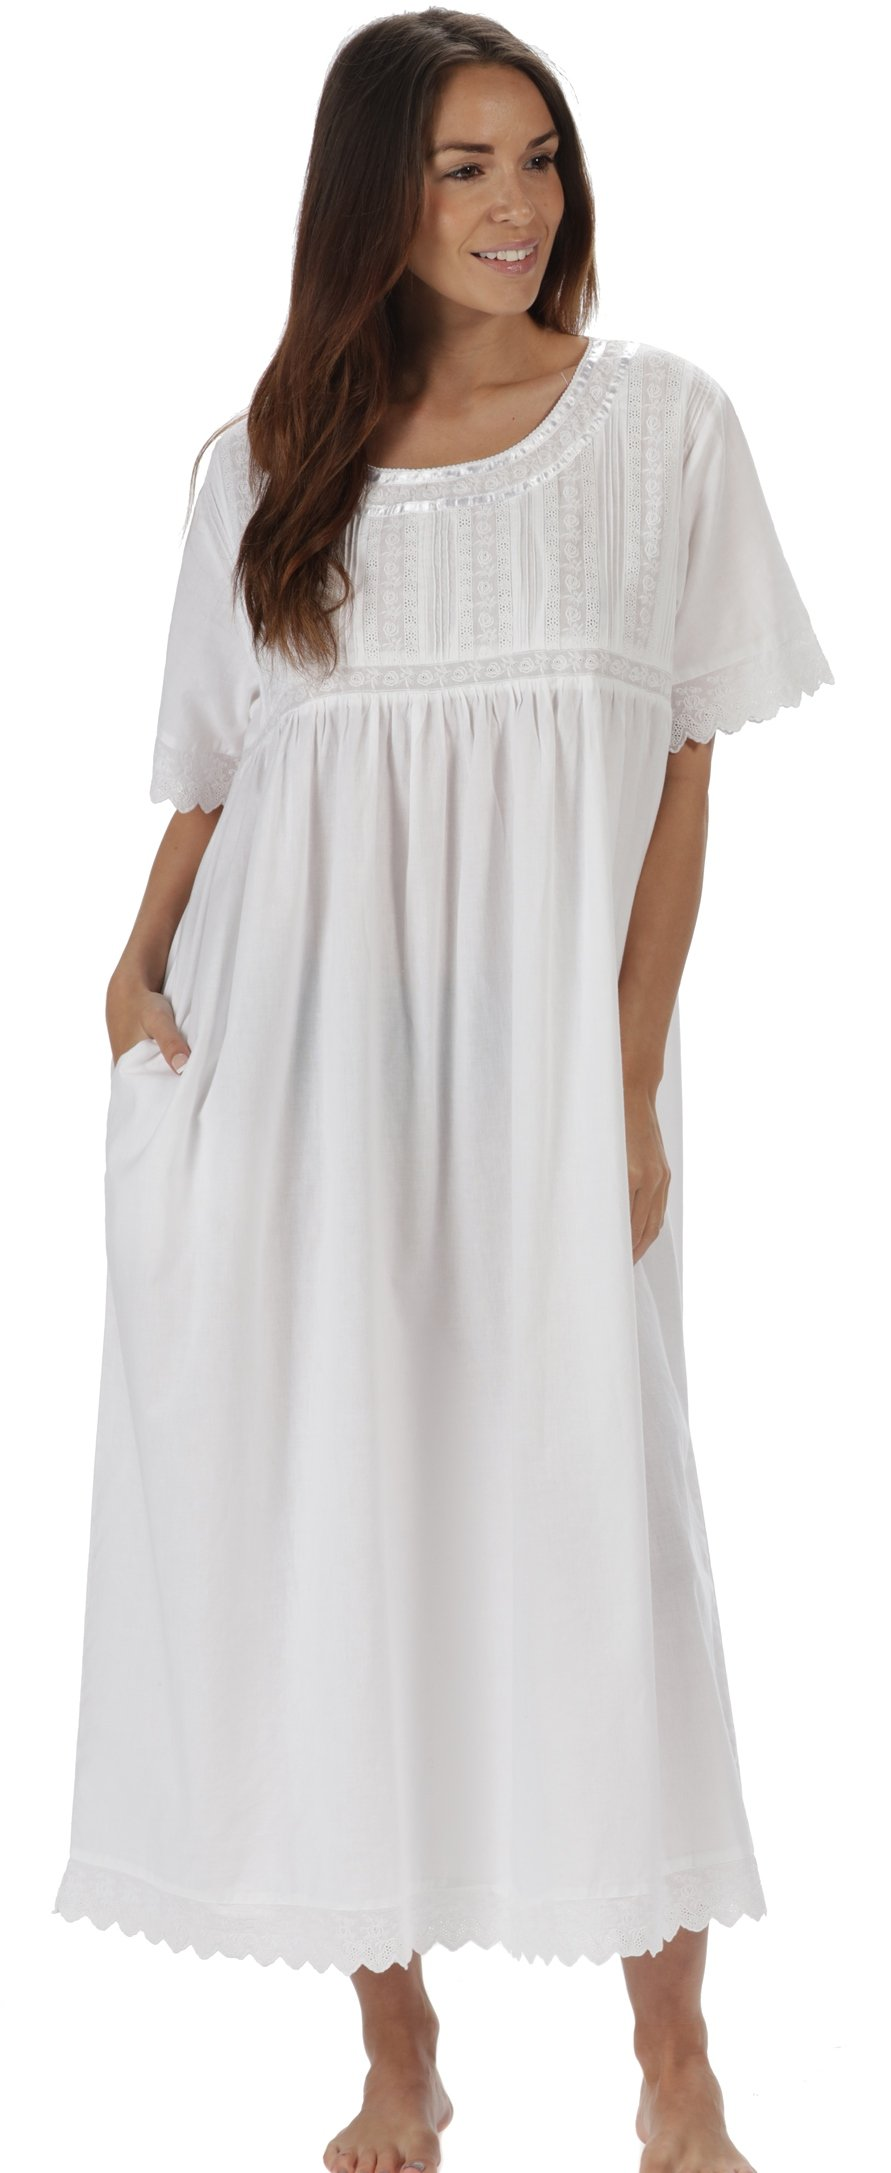 The 1 for U Nightgown 100% Cotton Sizes XS-3XL Helena (Large, White - Short Sleeves)